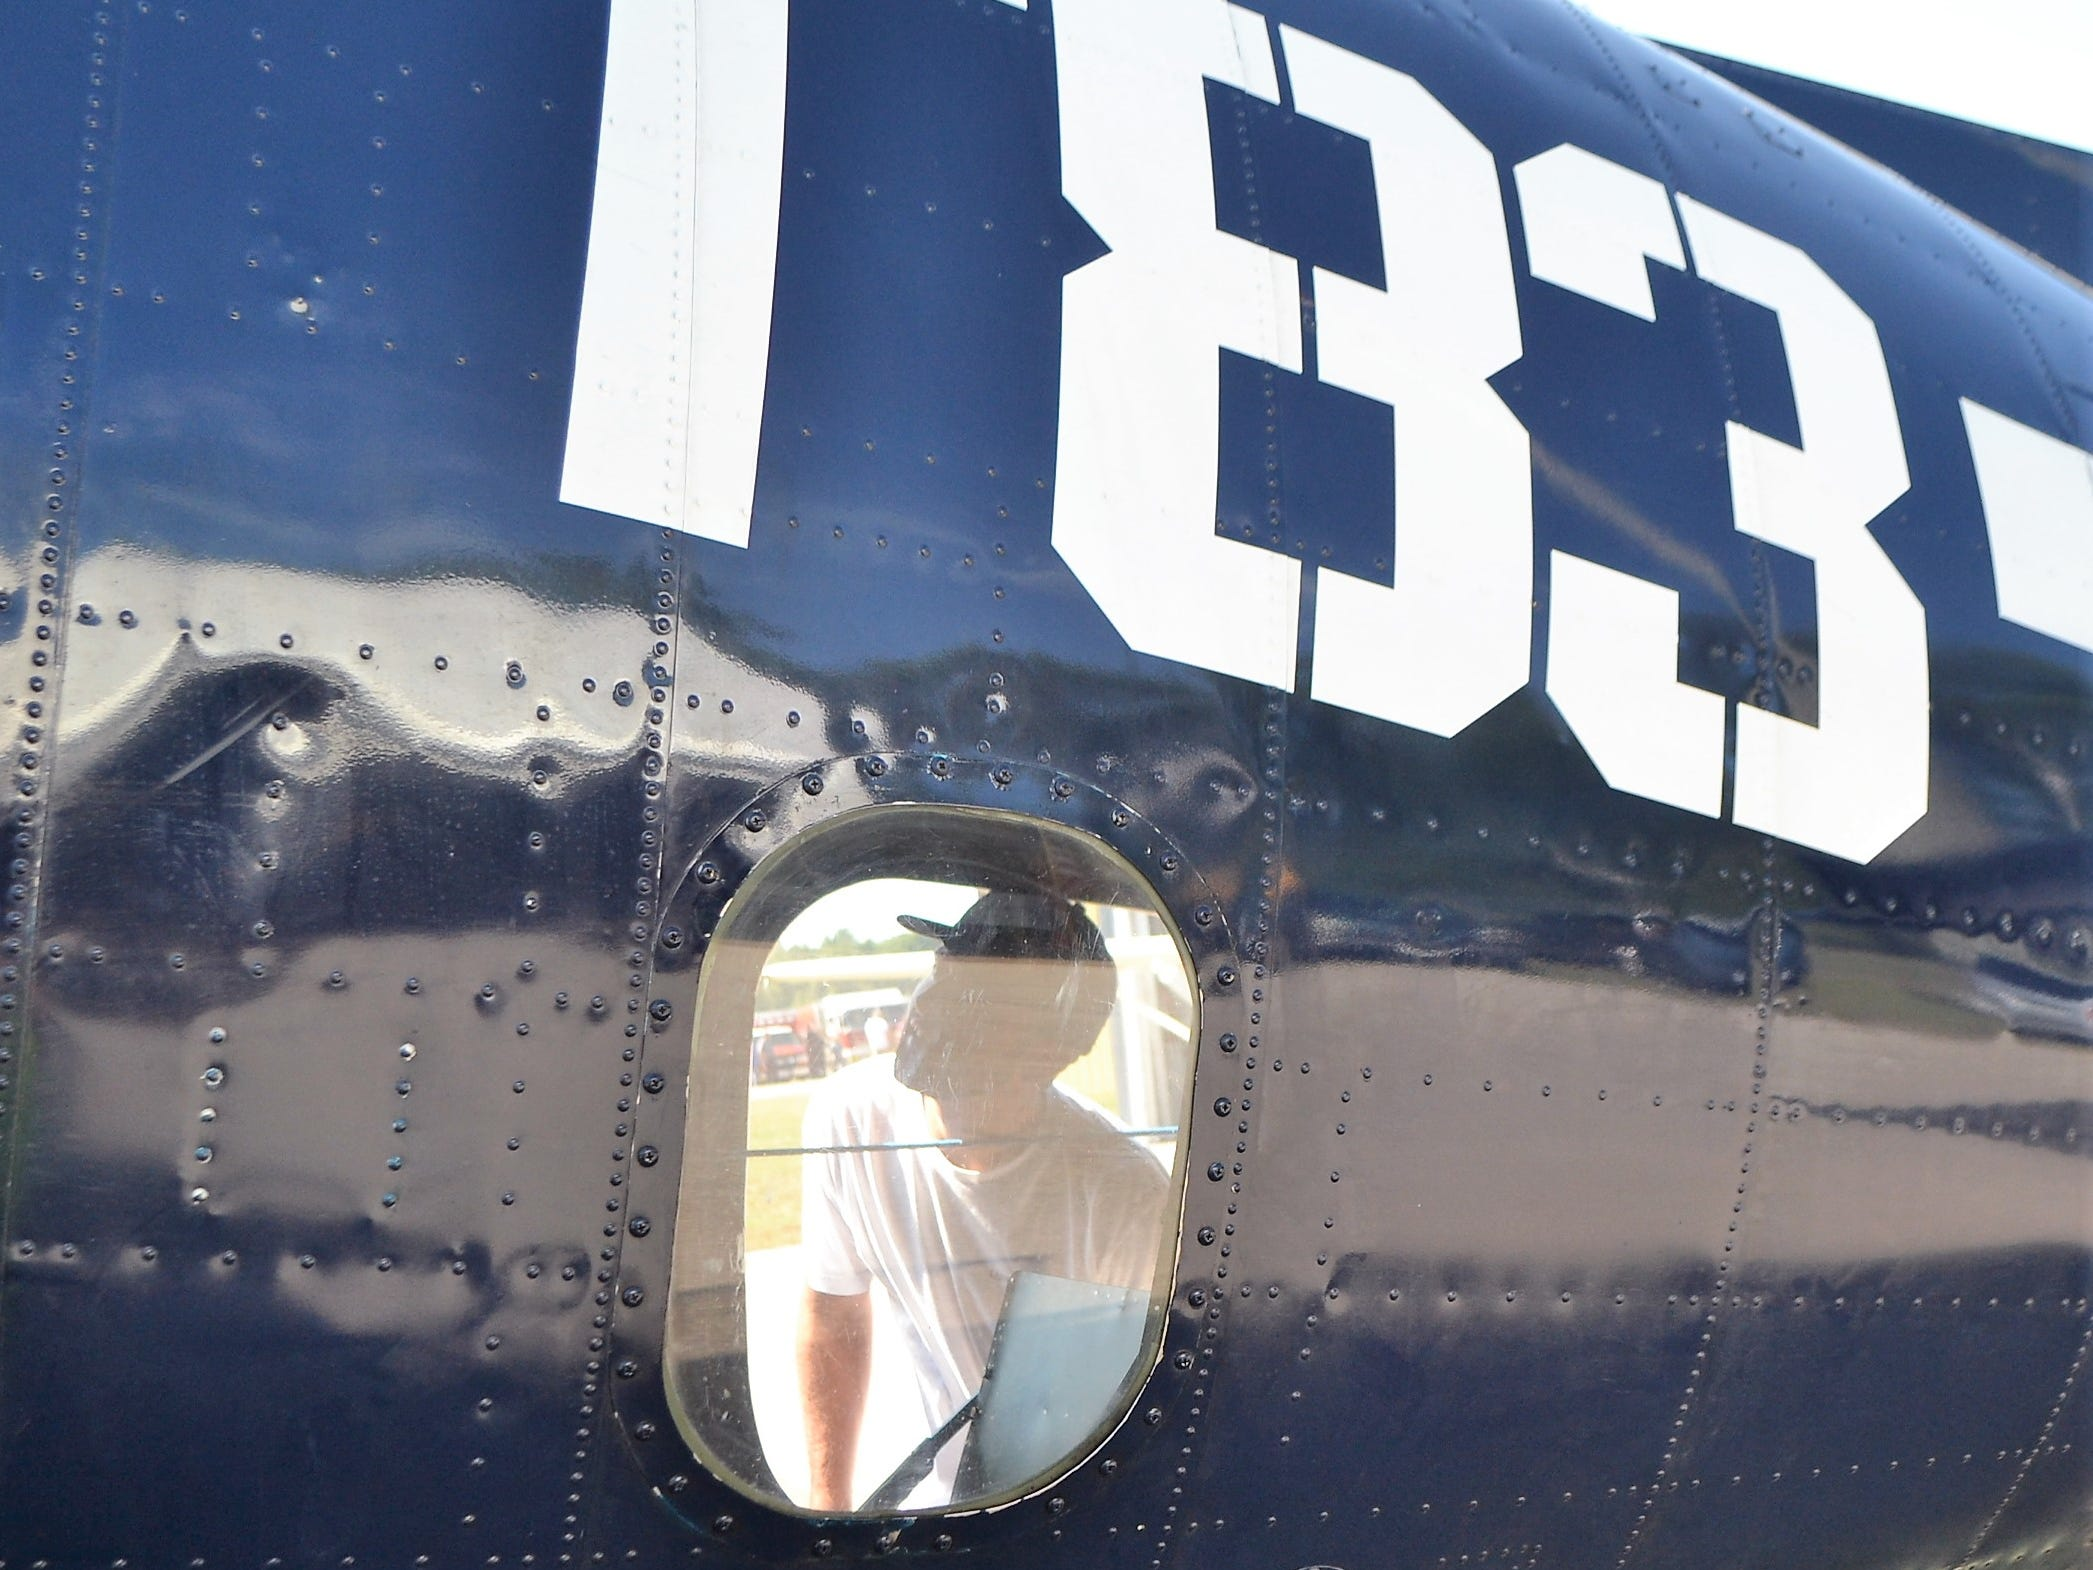 Connor Roscoe of Connecticut is seen through a window looking at the interior of the TBM Avenger at the Oconto Fly-in, Car & Tractor Show on Sept. 15 at the Oconto-J. Douglas Bake Municipal Airport. Roscoe and a friend were traveling cross-country and heard about the show and decided to stop by.